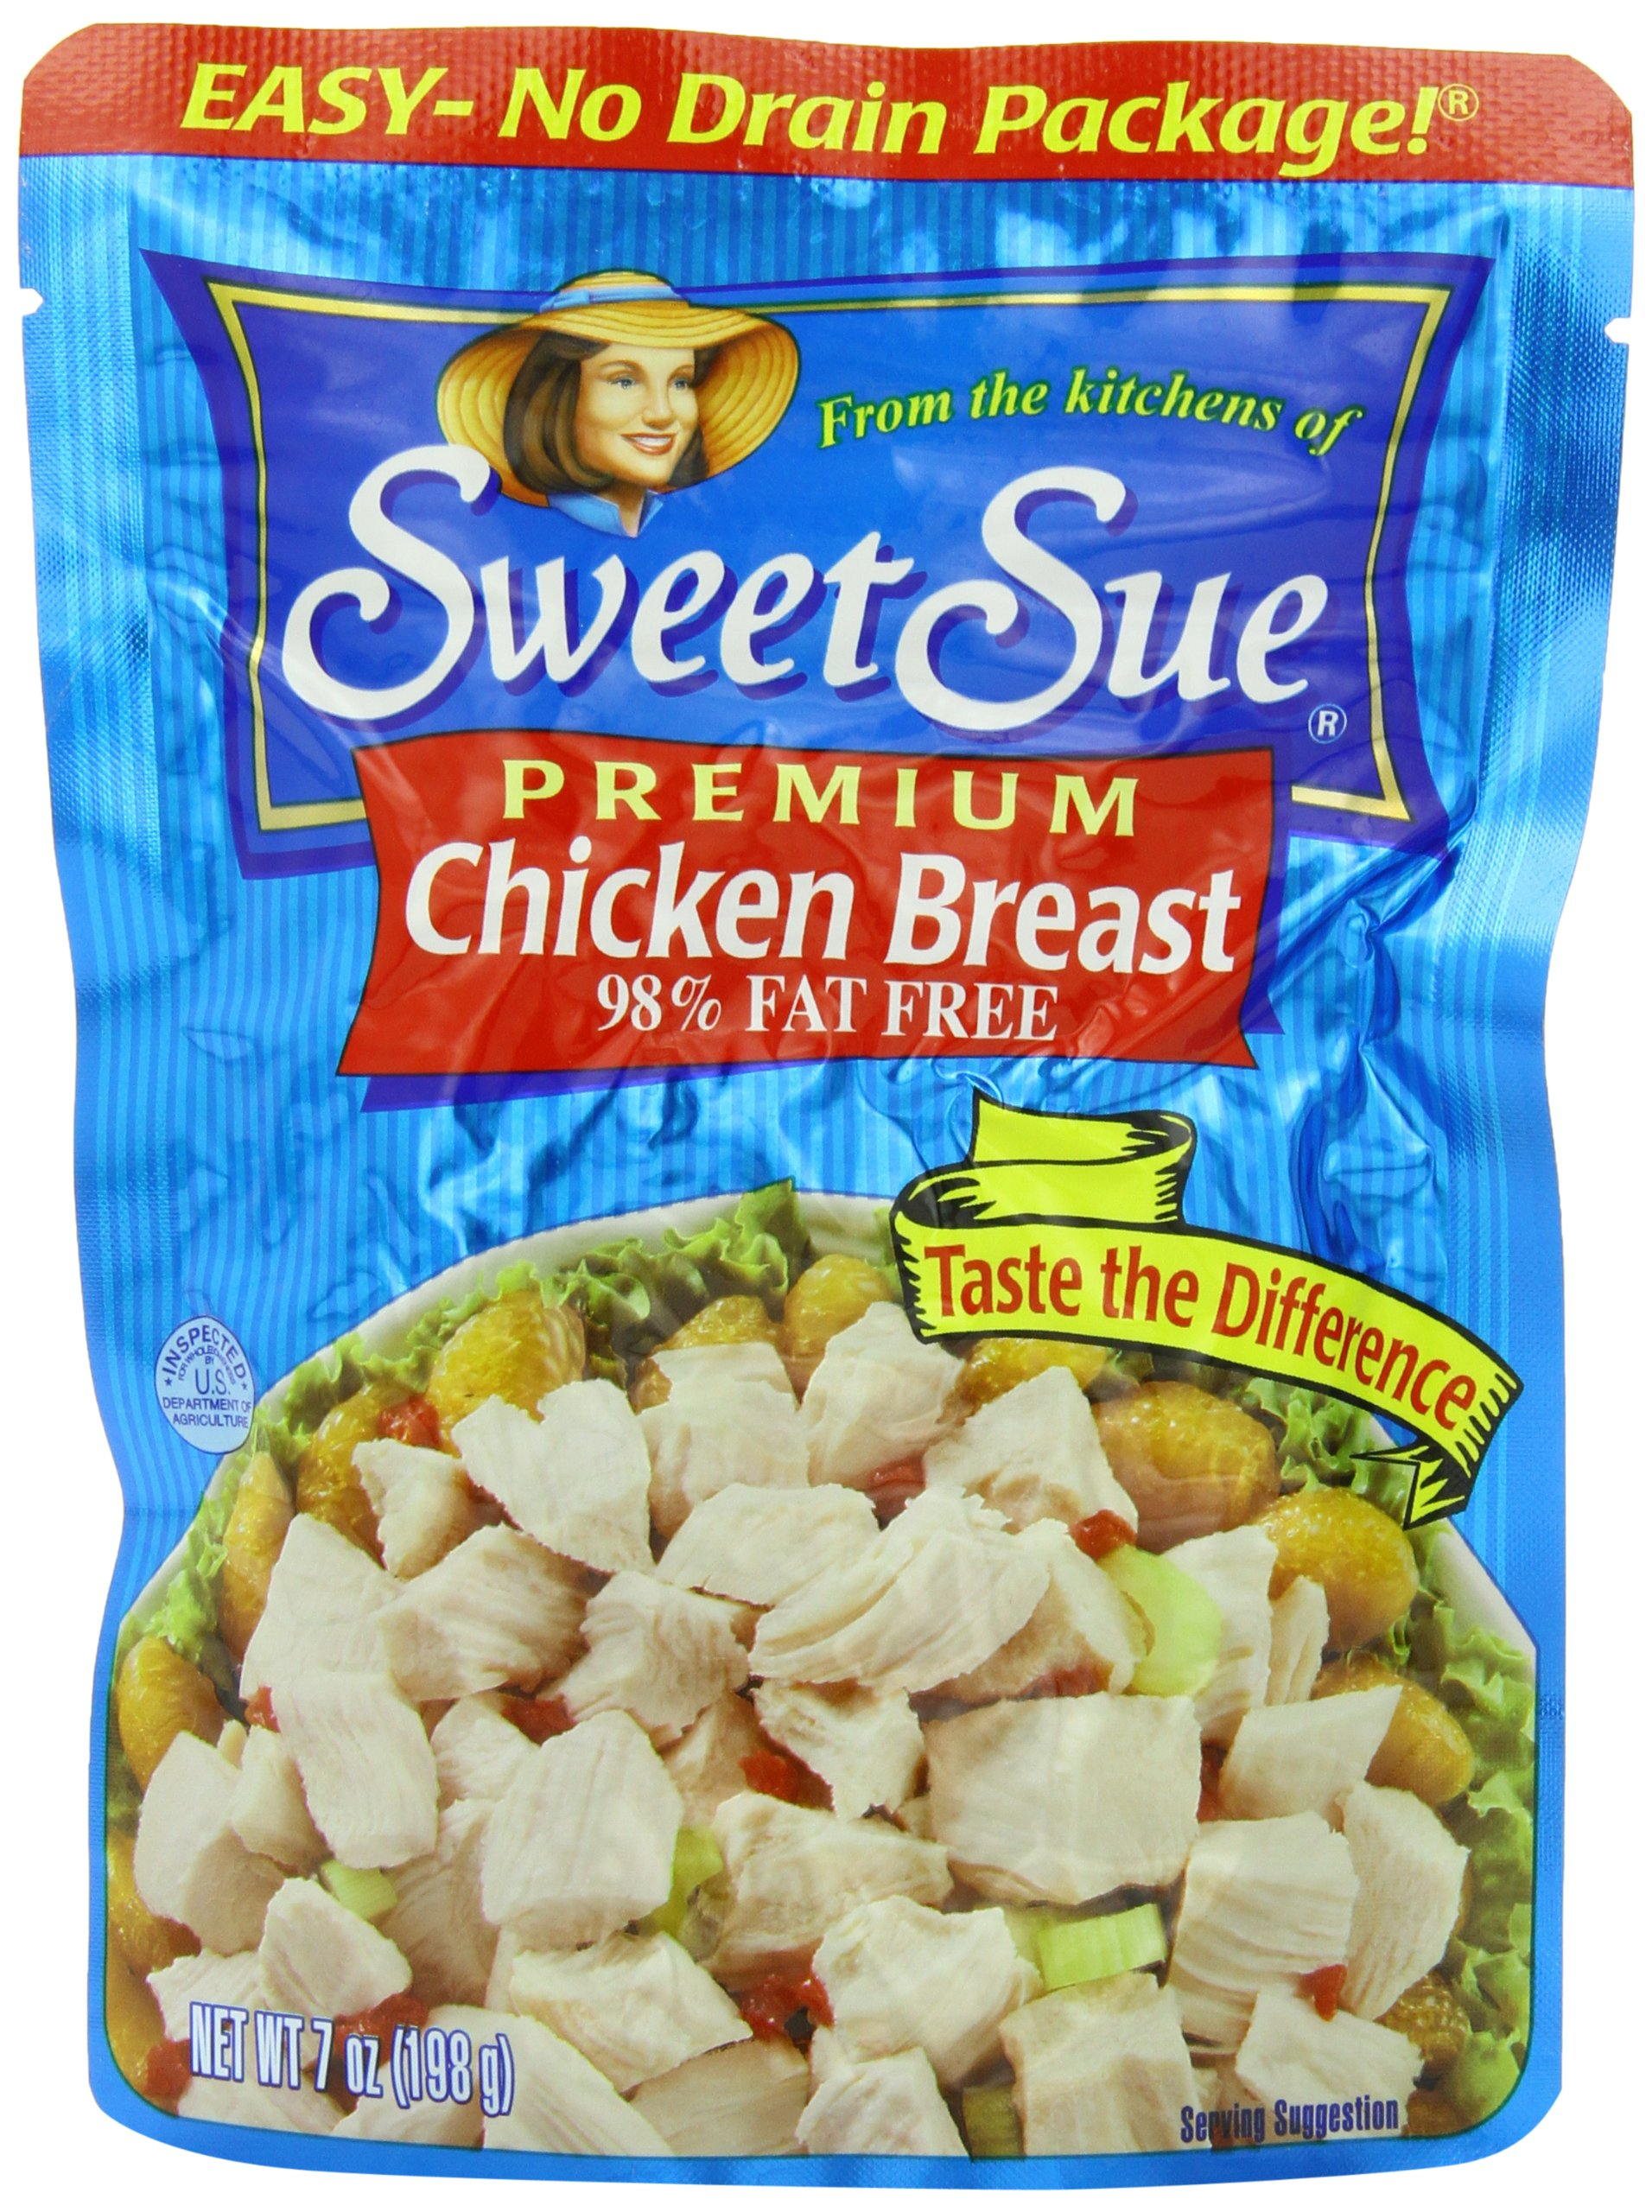 SWEET SUE Chicken Breast, High Protein Food, Keto Food and Snacks, Gluten Free Food, High Protein Snacks, Bulk Canned Food, 7 Ounce Pouches (Pack of 12) by Sweet Sue